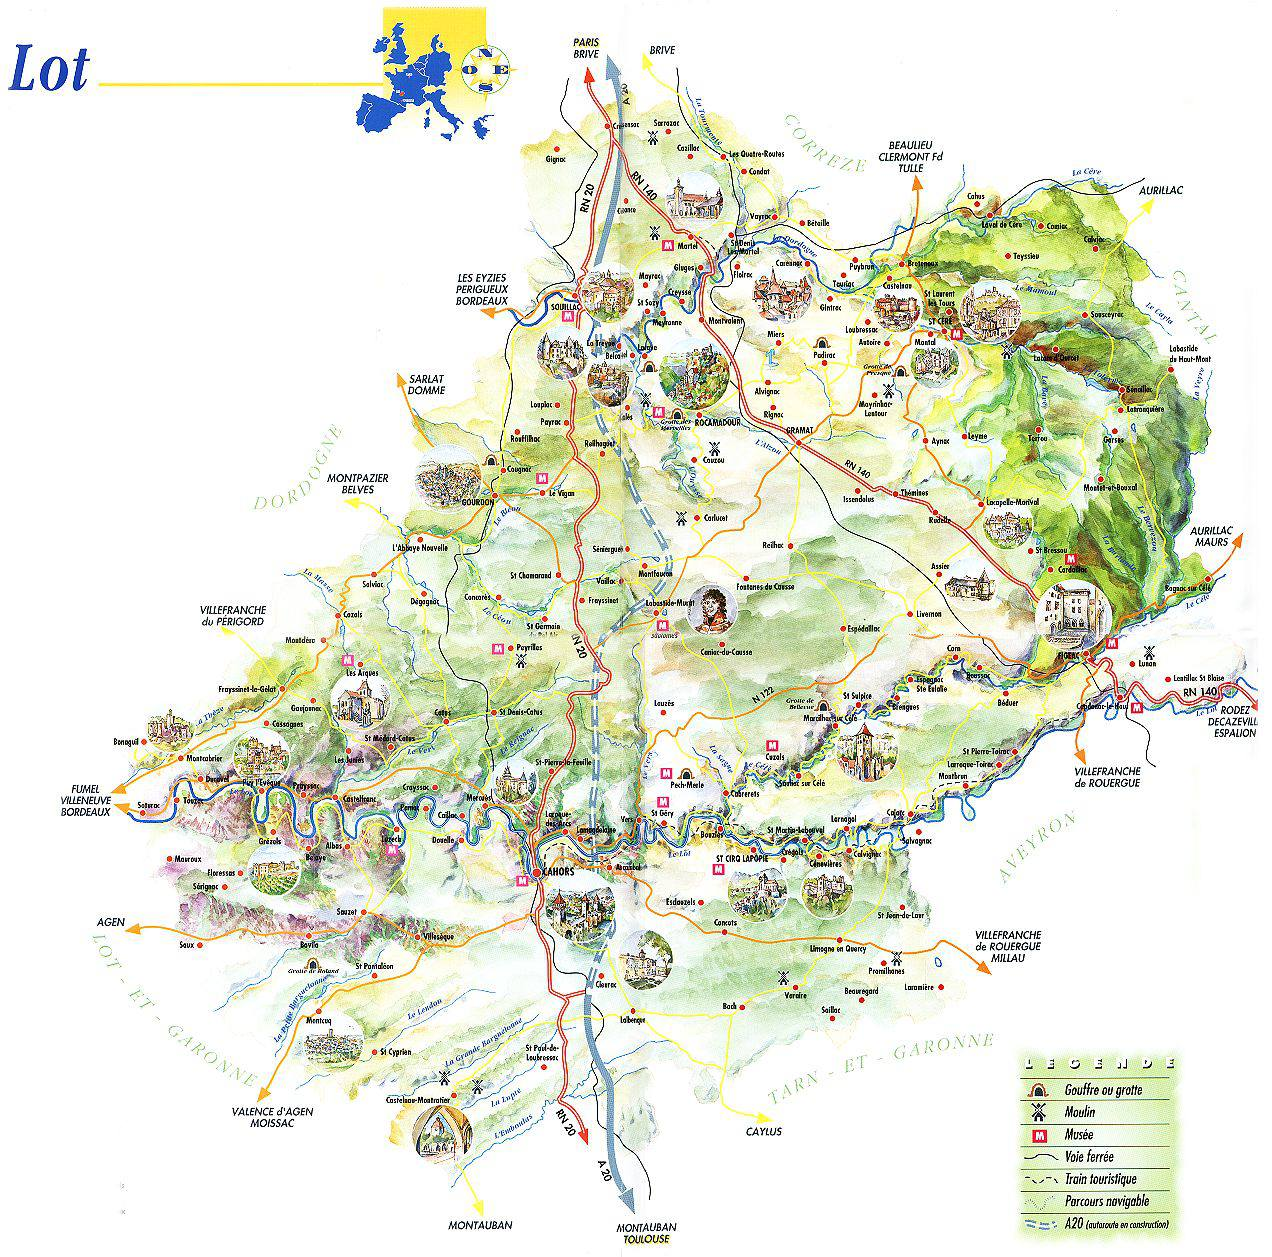 carte du lot - Image